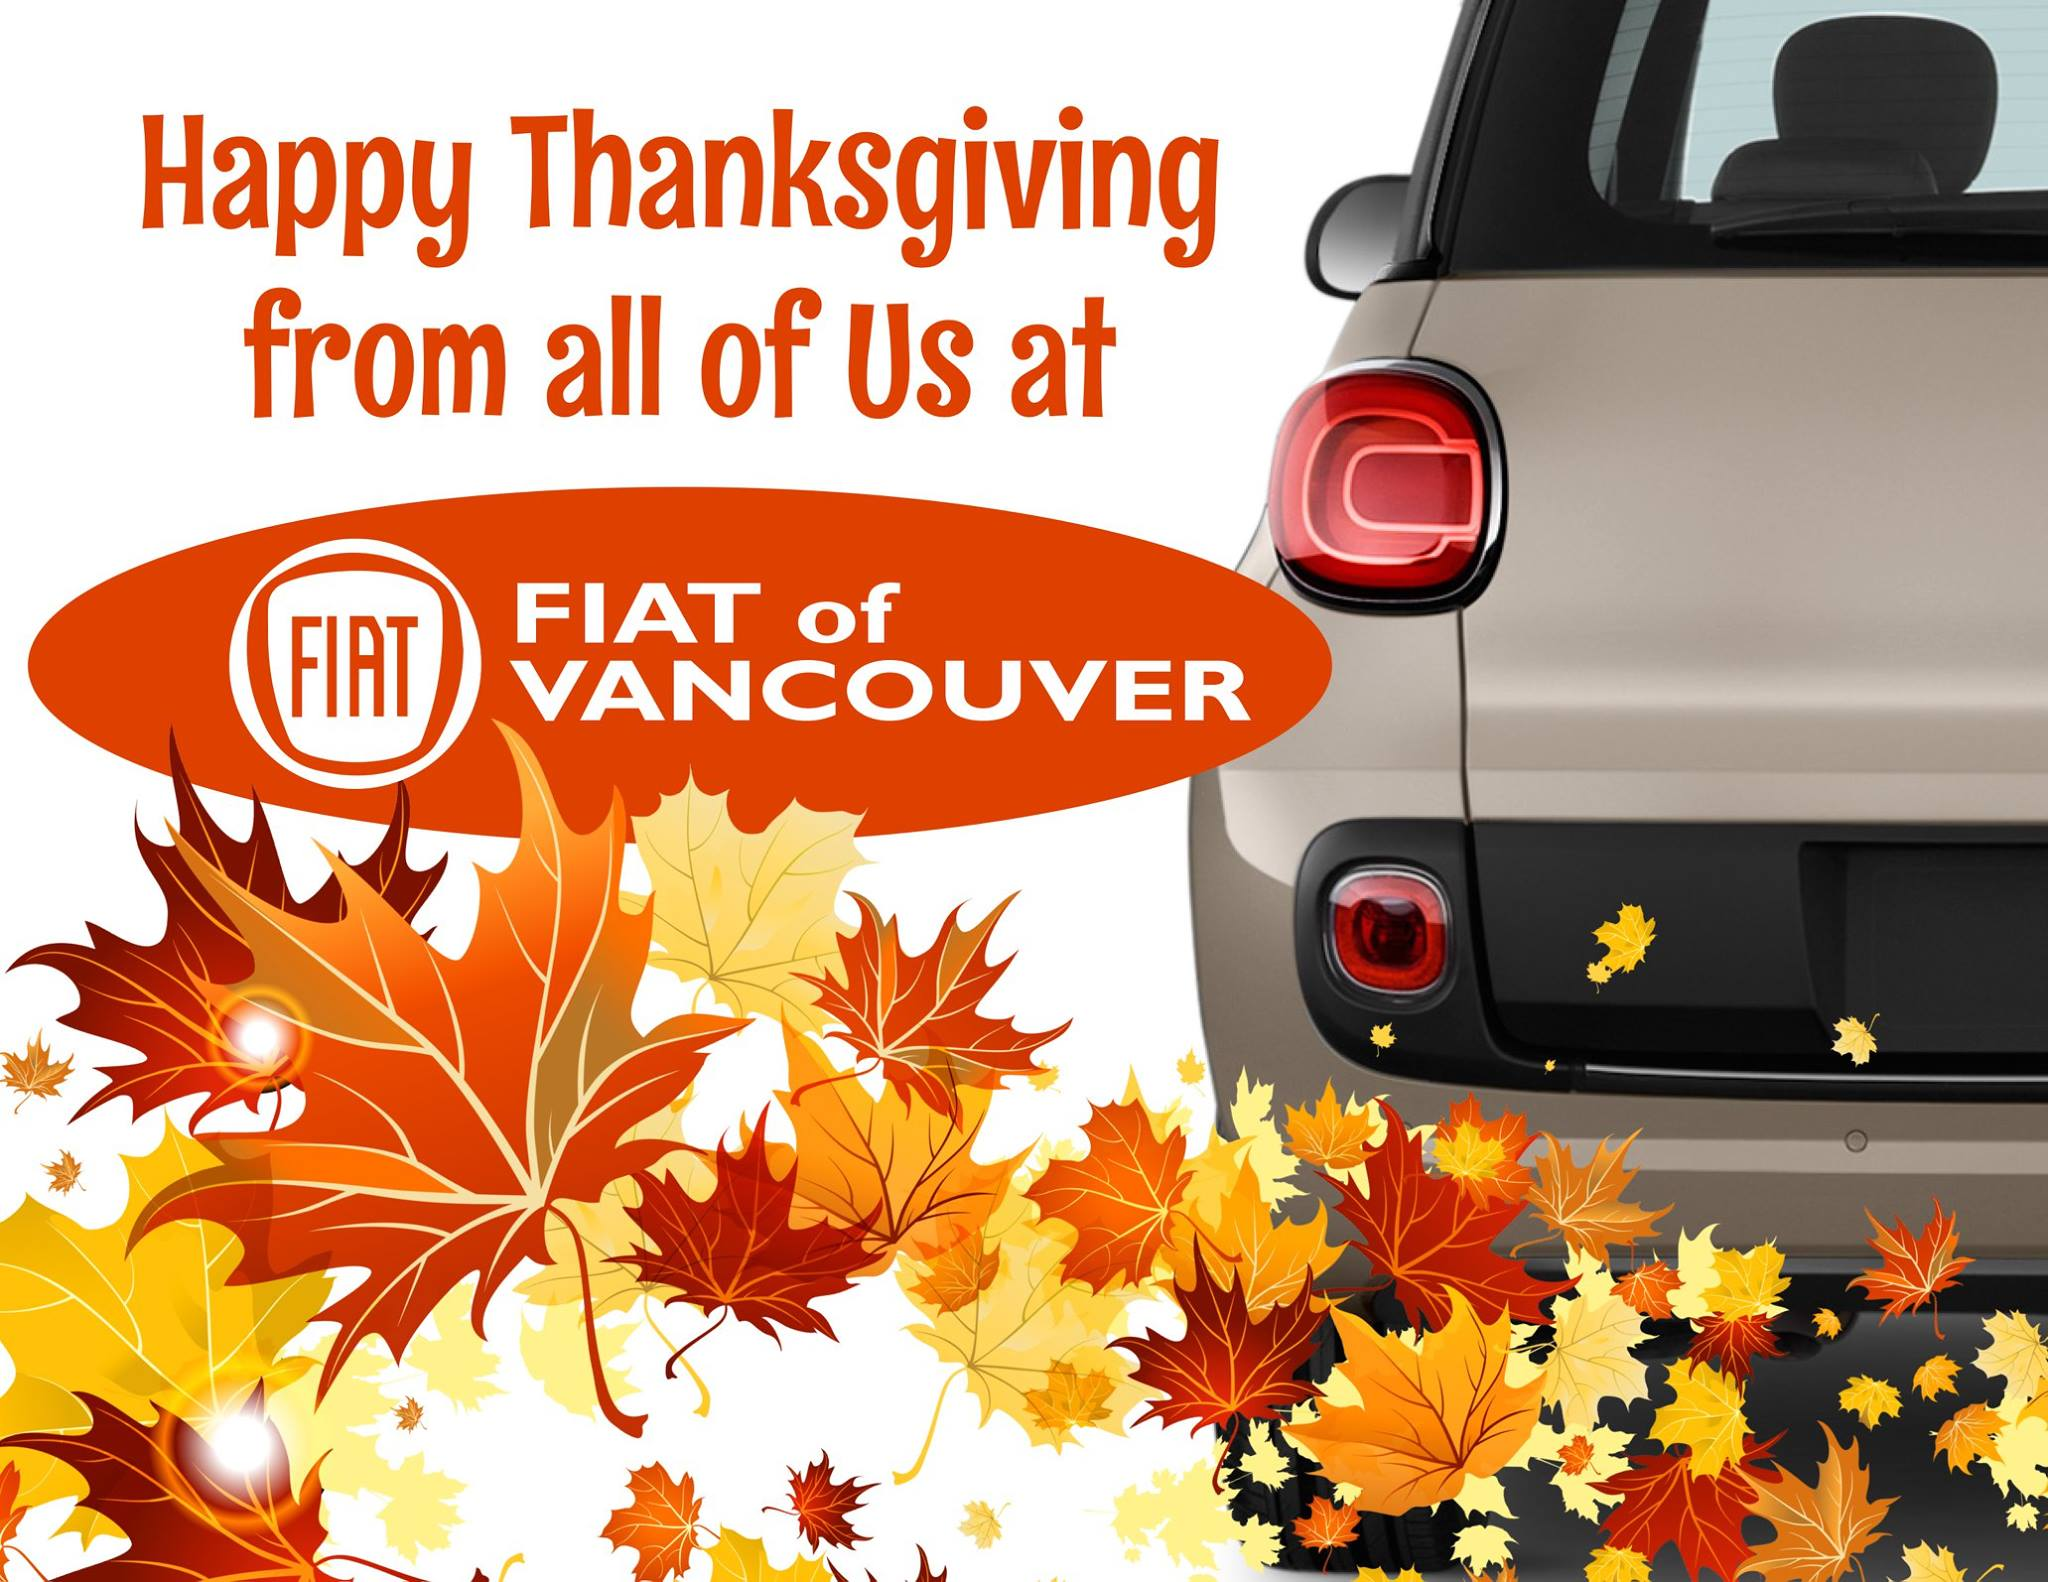 Fiat-vancouver-happy-thanksgiving